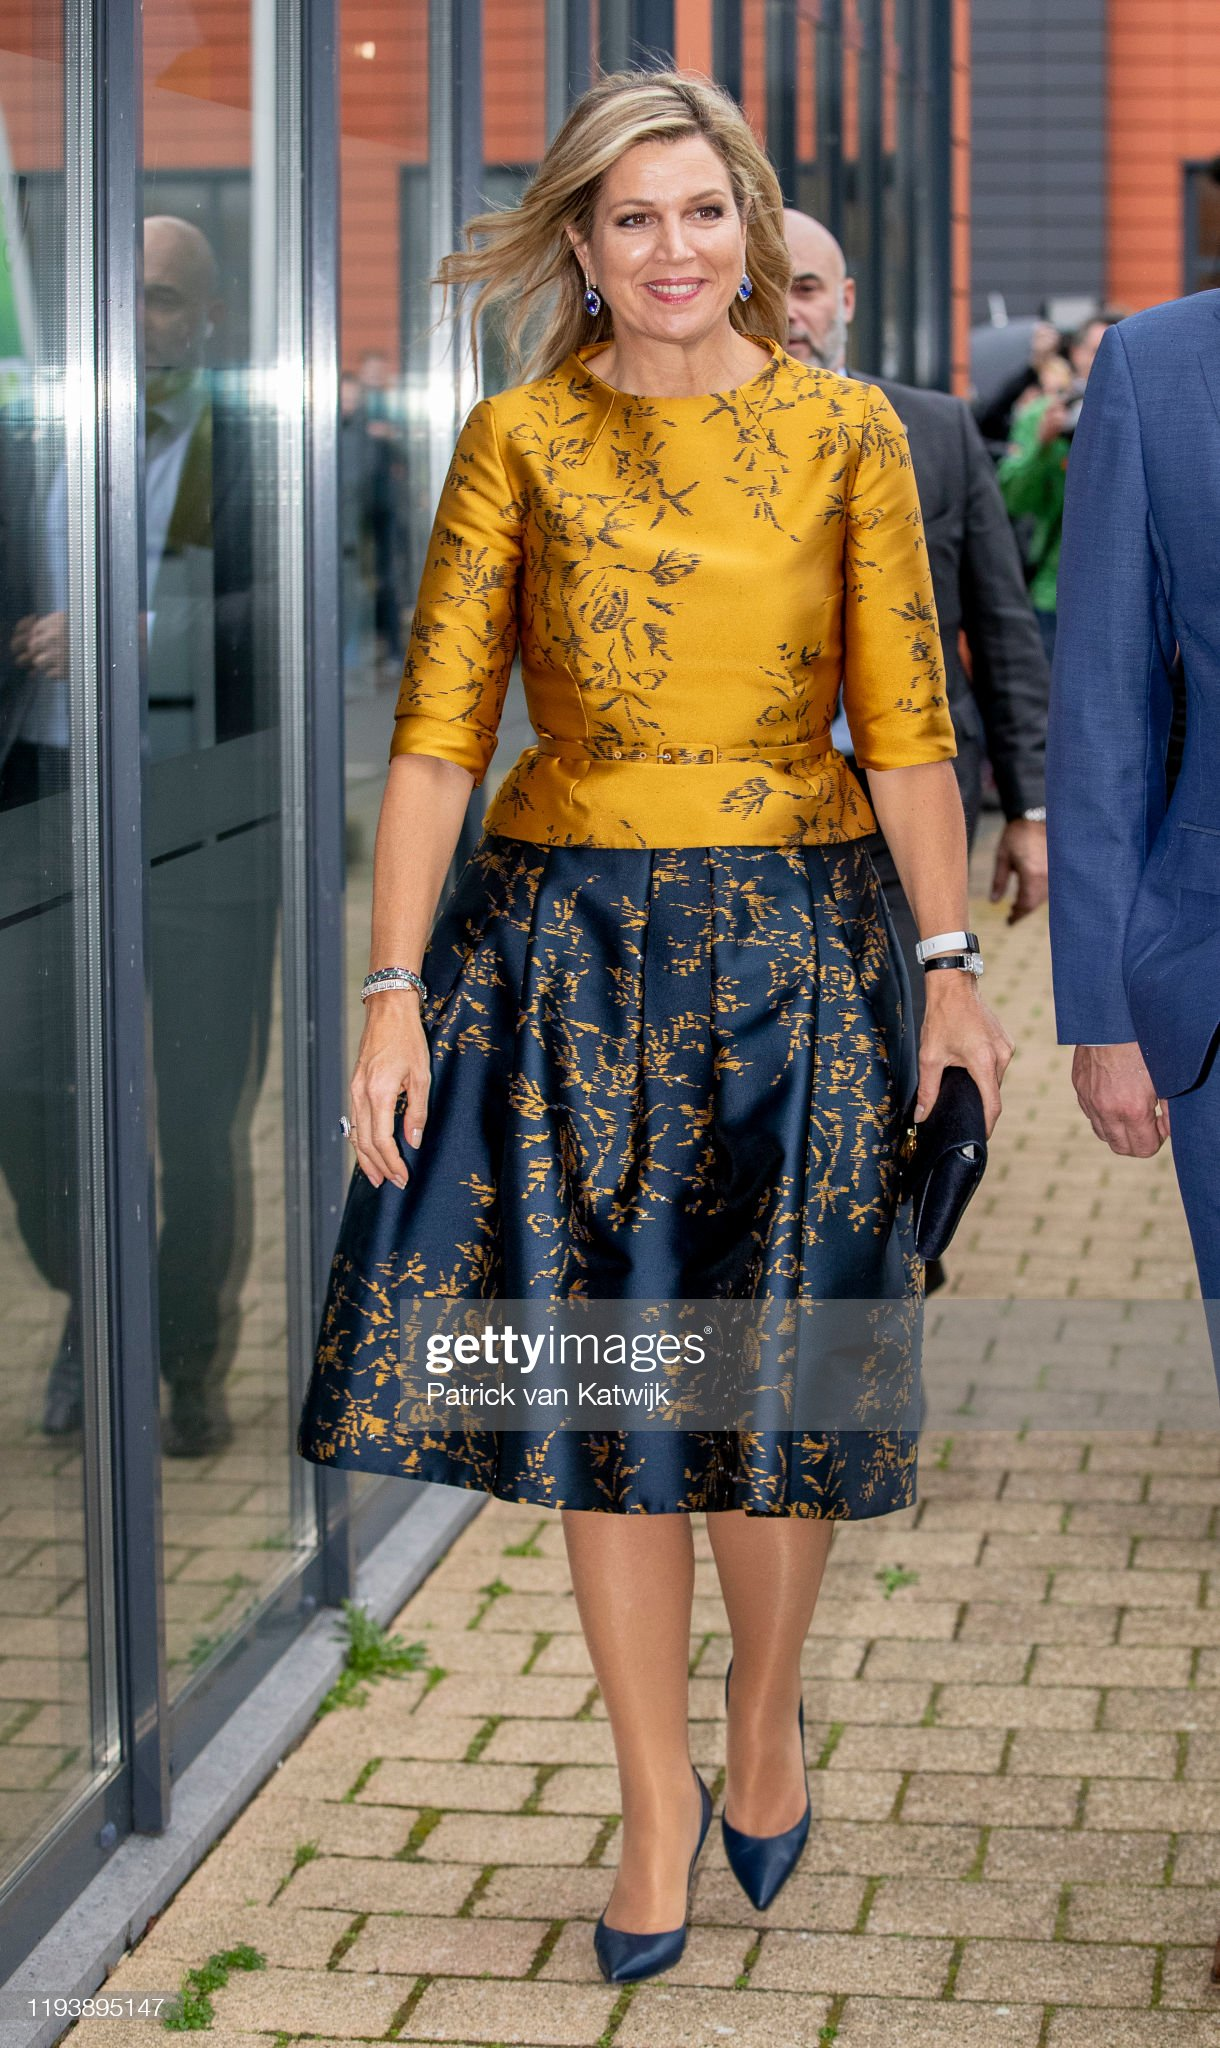 https://media.gettyimages.com/photos/queen-maxima-of-the-netherlands-during-a-visit-to-the-scouting-cubs-picture-id1193895147?s=2048x2048